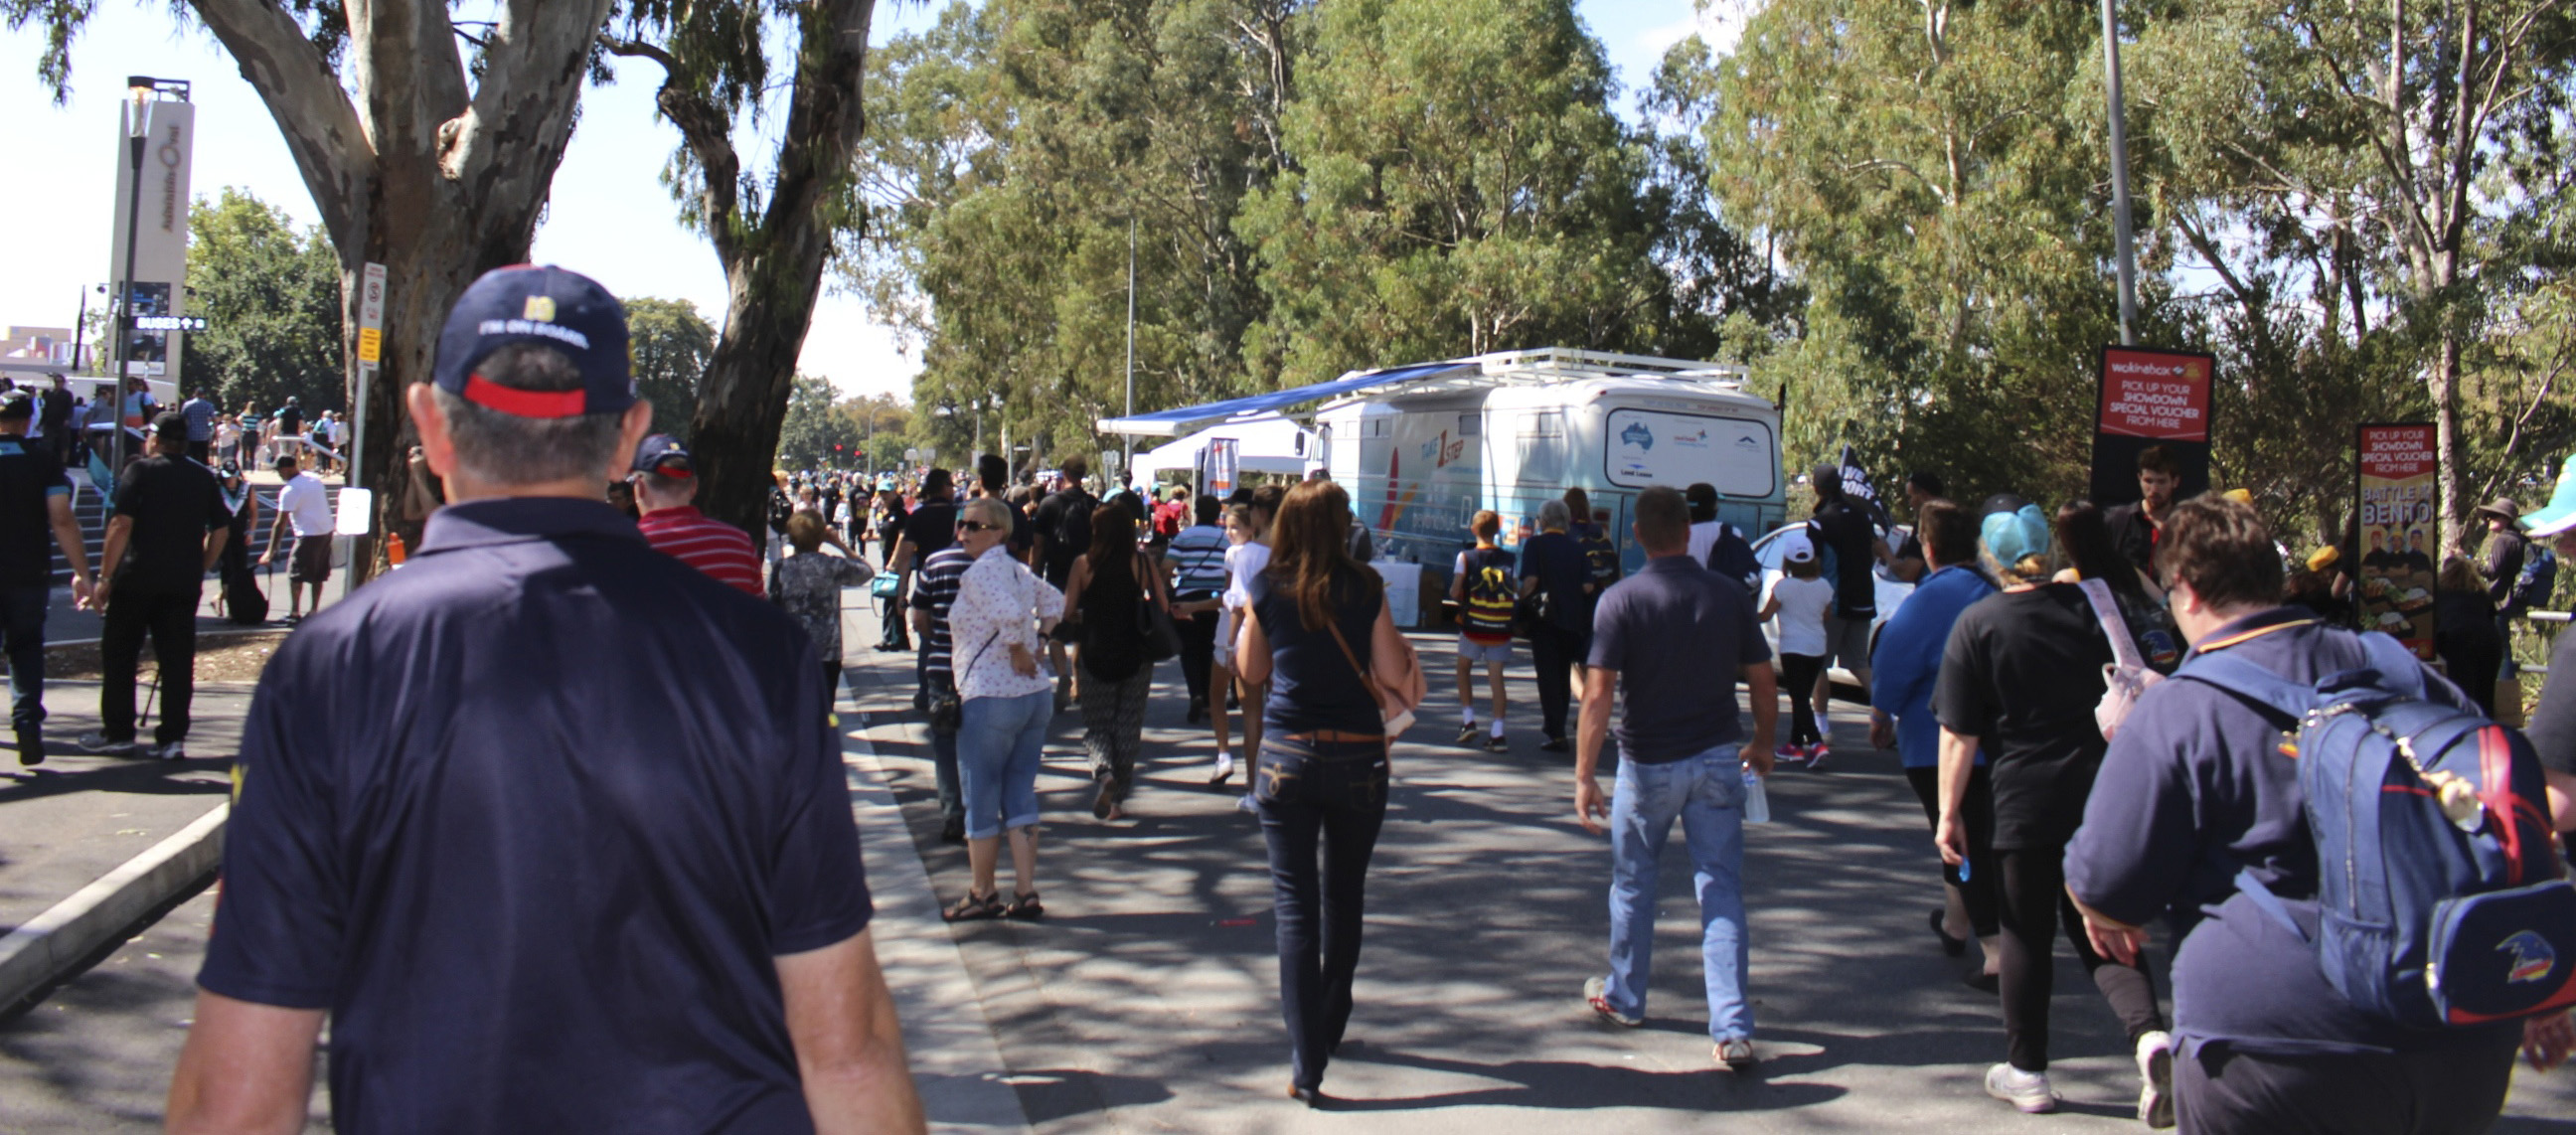 More than 40,000 people attended the Port Power vs Adelaide Crows showdown.